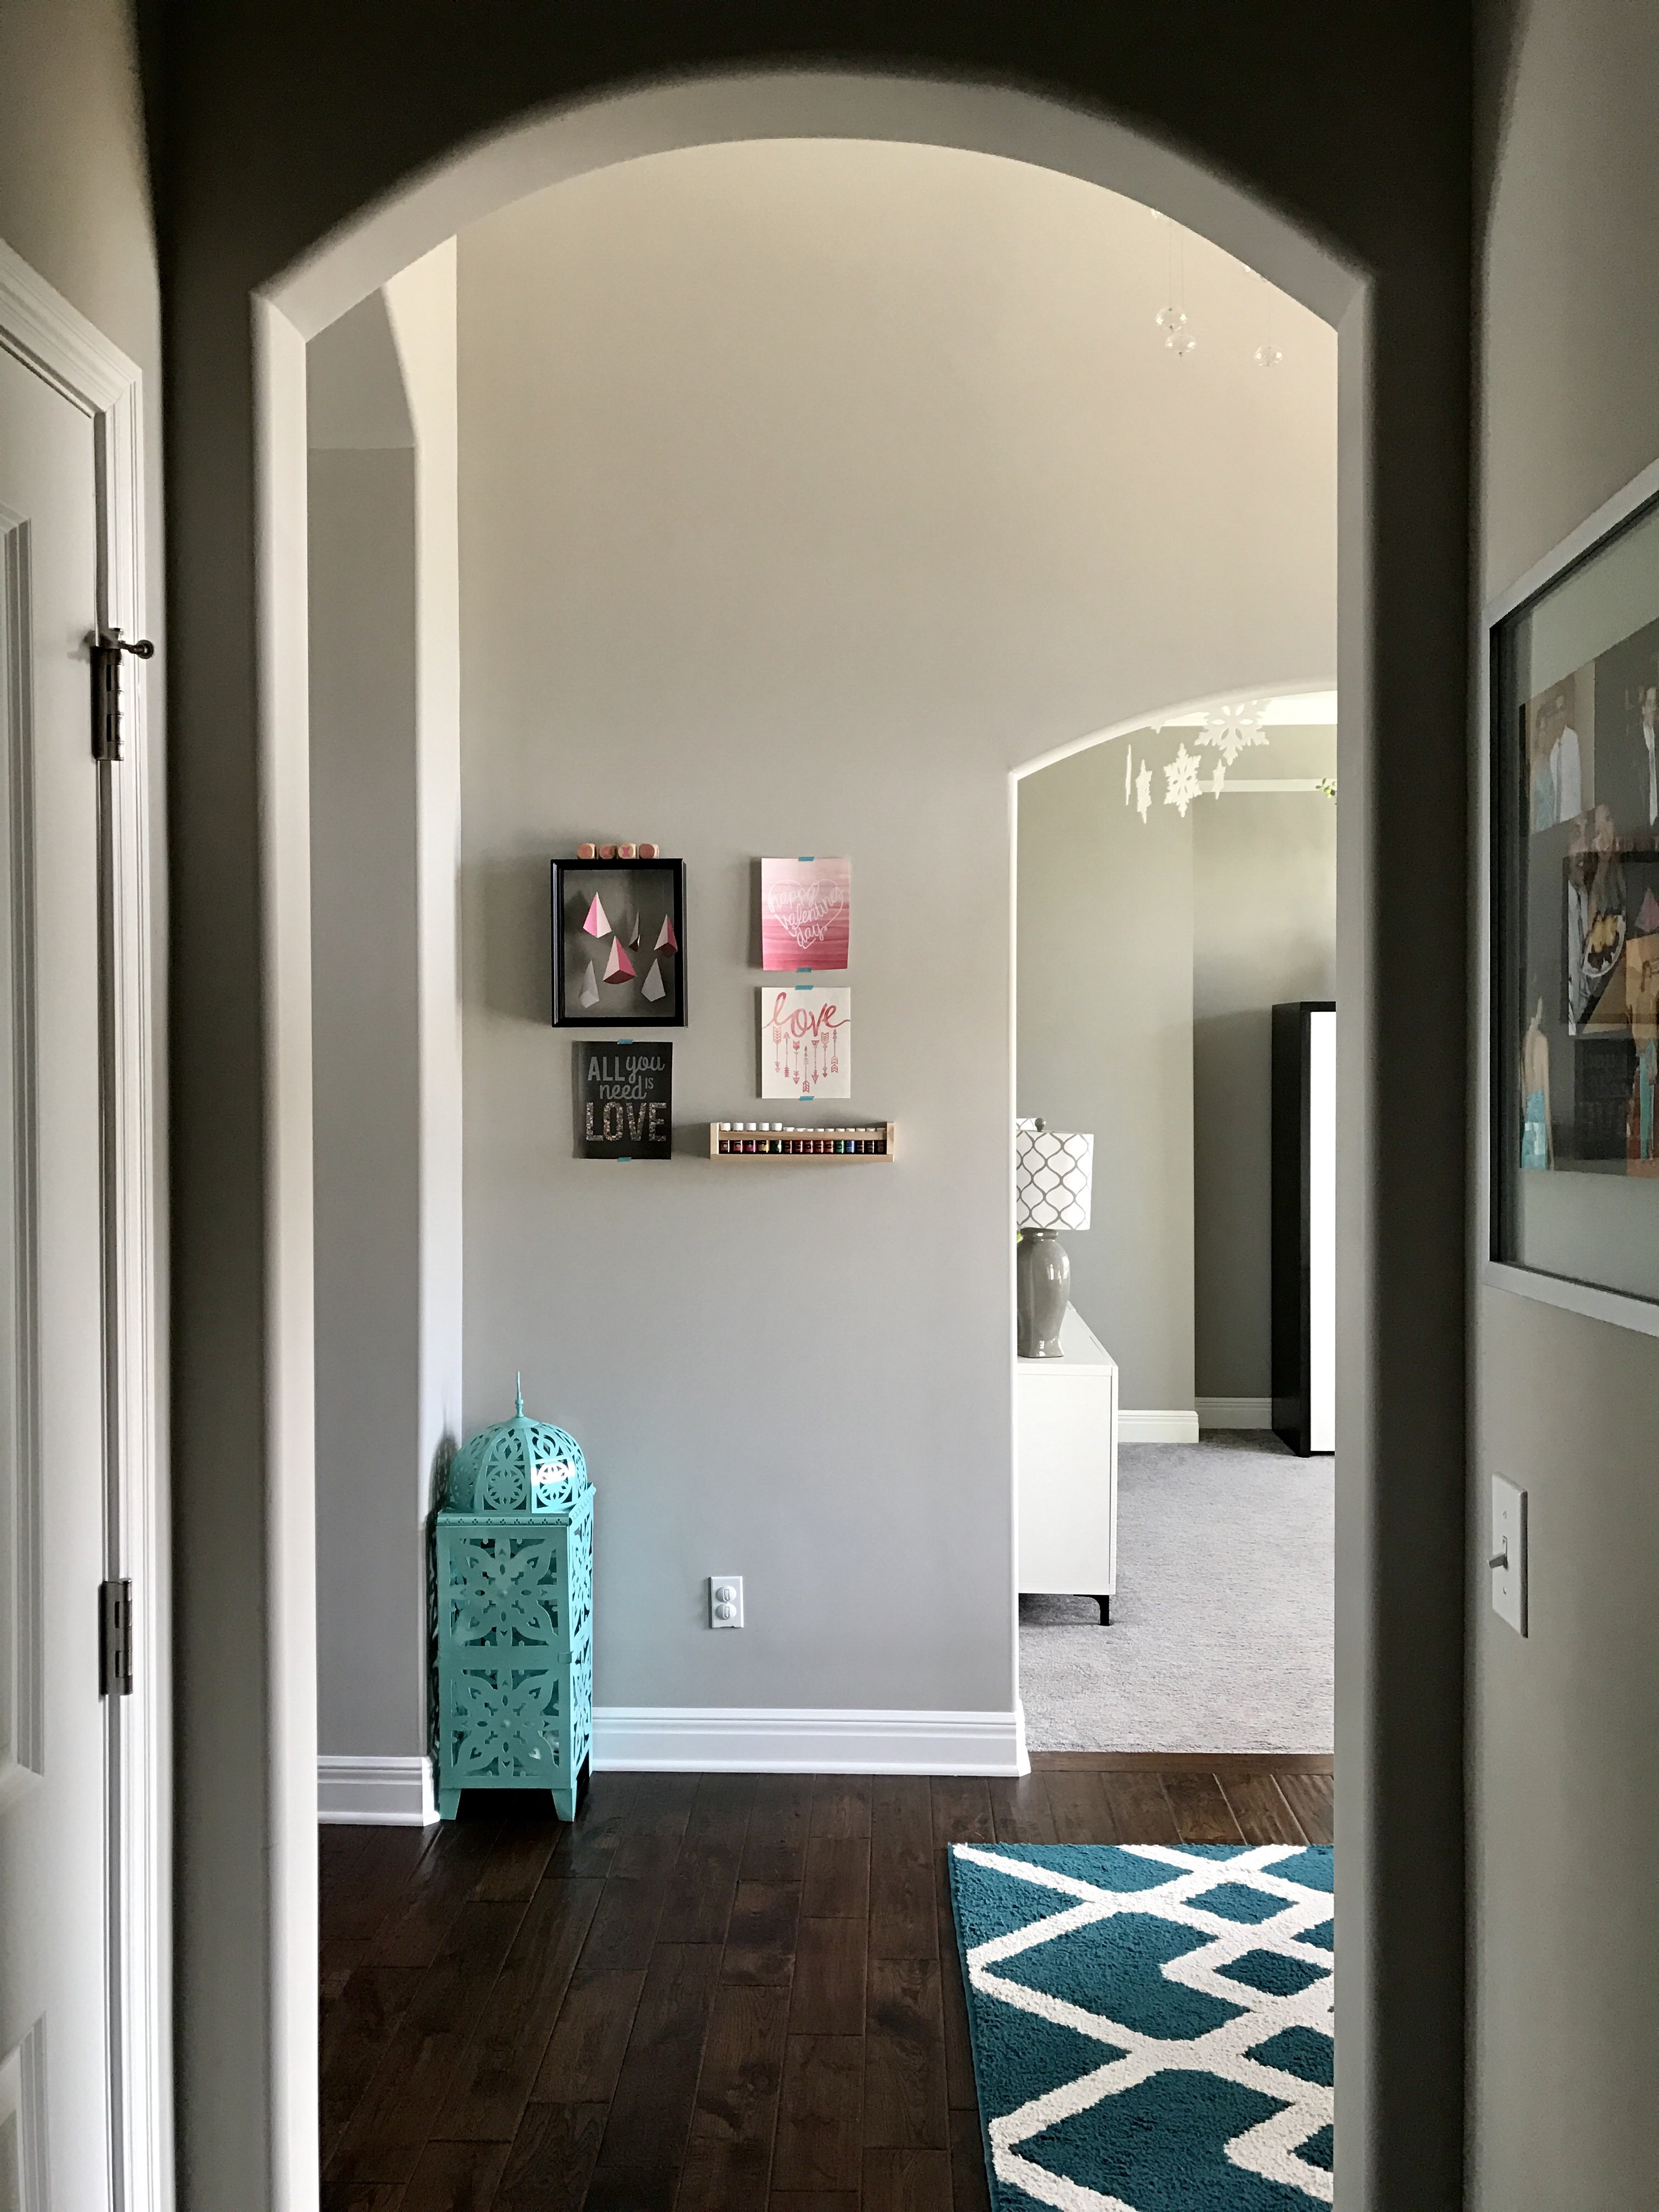 View of Entryway When Entering from Garage